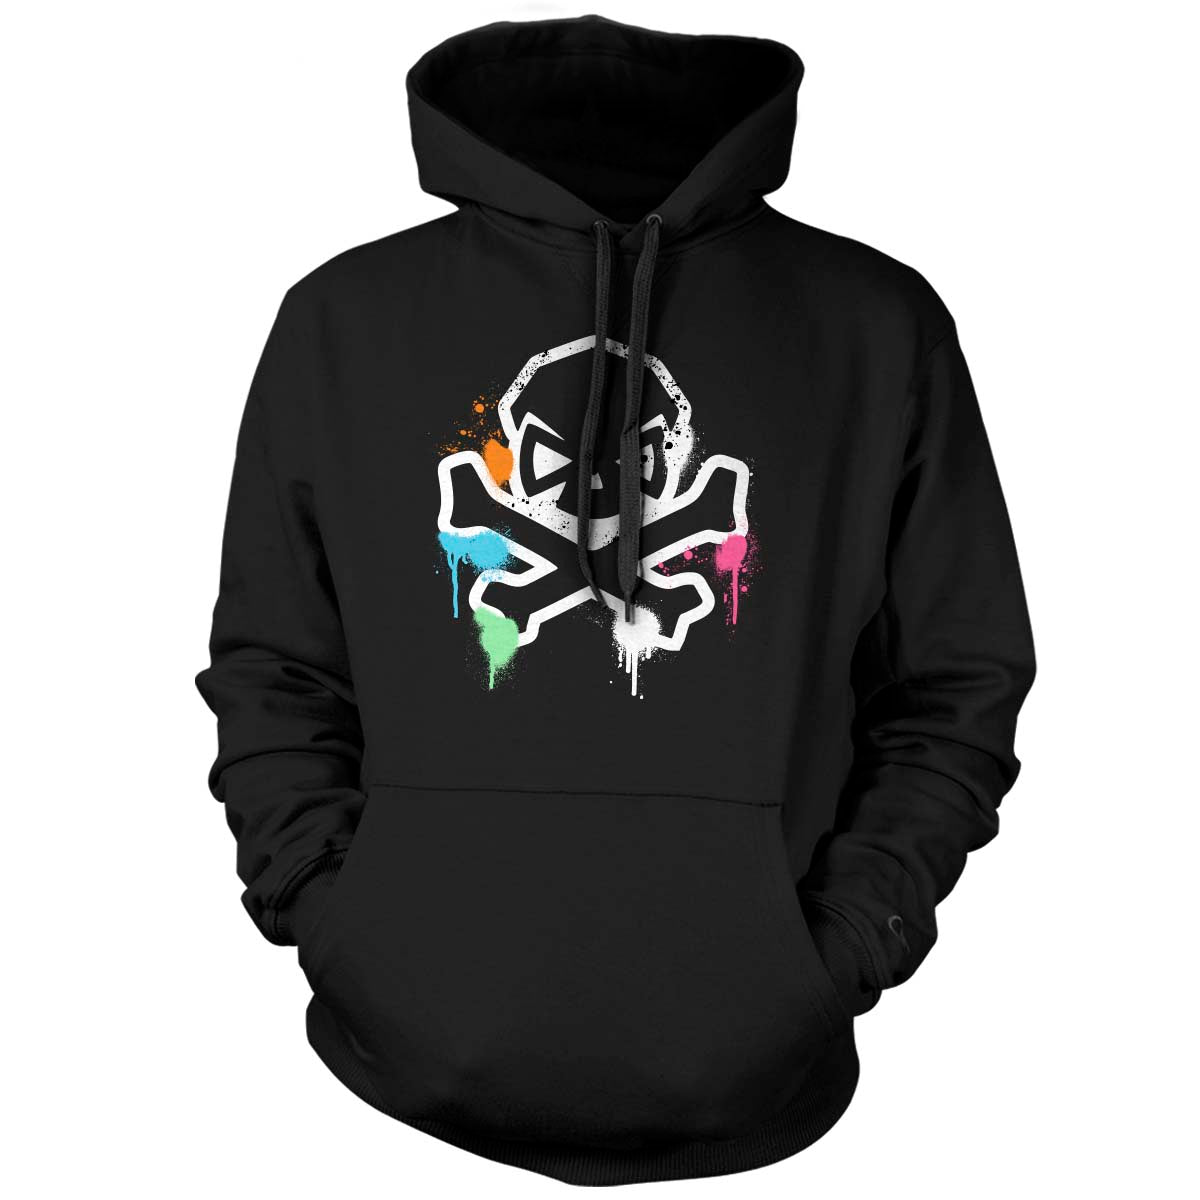 Spring Time Graffiti - Hoodie - Black - T-Shirts - Pipe Hitters Union